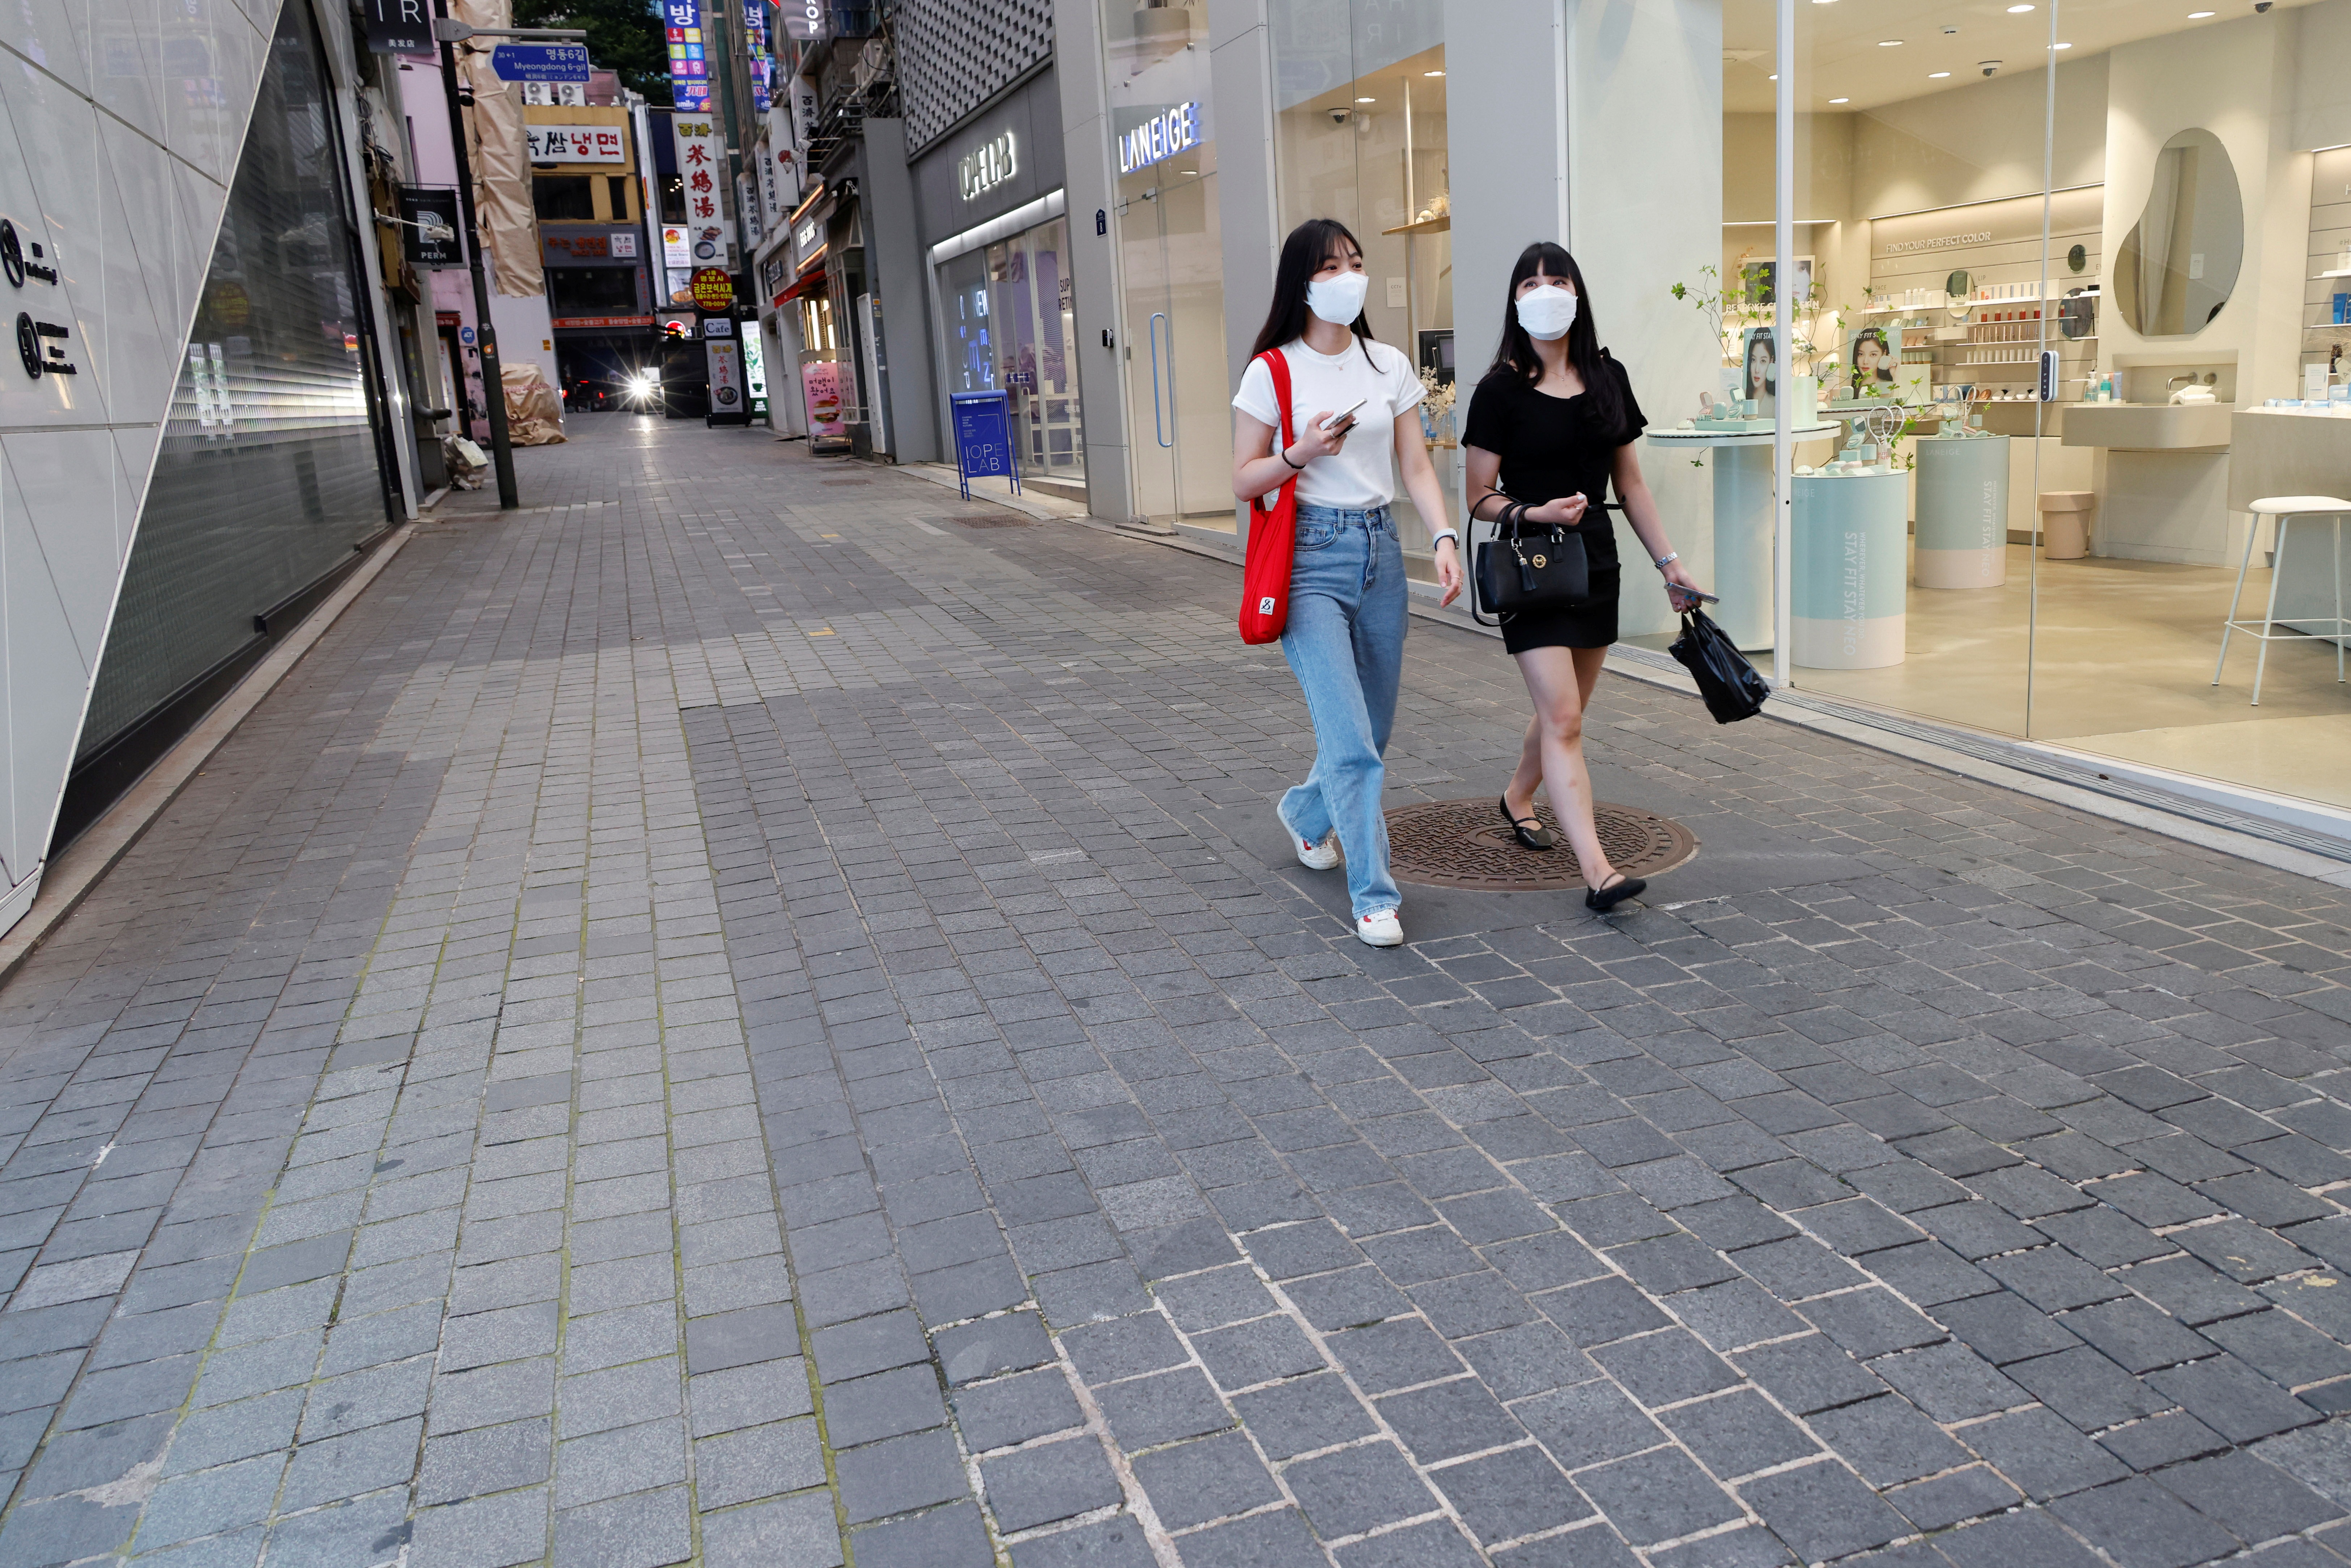 Women walk on an empty street amid tightened social distancing rules due to the coronavirus disease (COVID-19) pandemic in Seoul, South Korea, July 12, 2021. REUTERS/Heo Ran